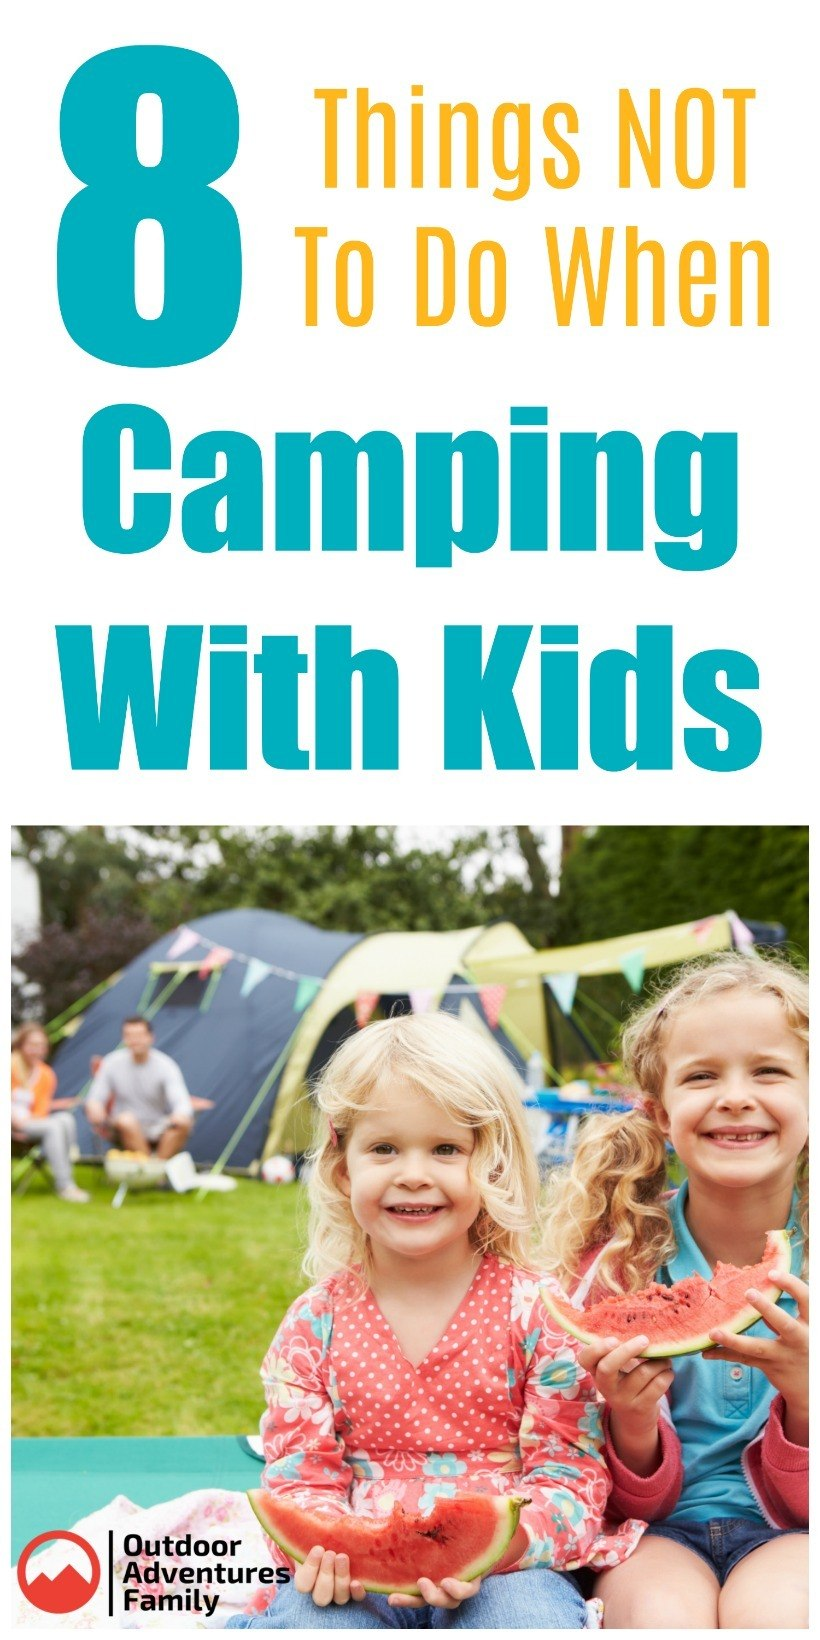 things not to do when camping with kids